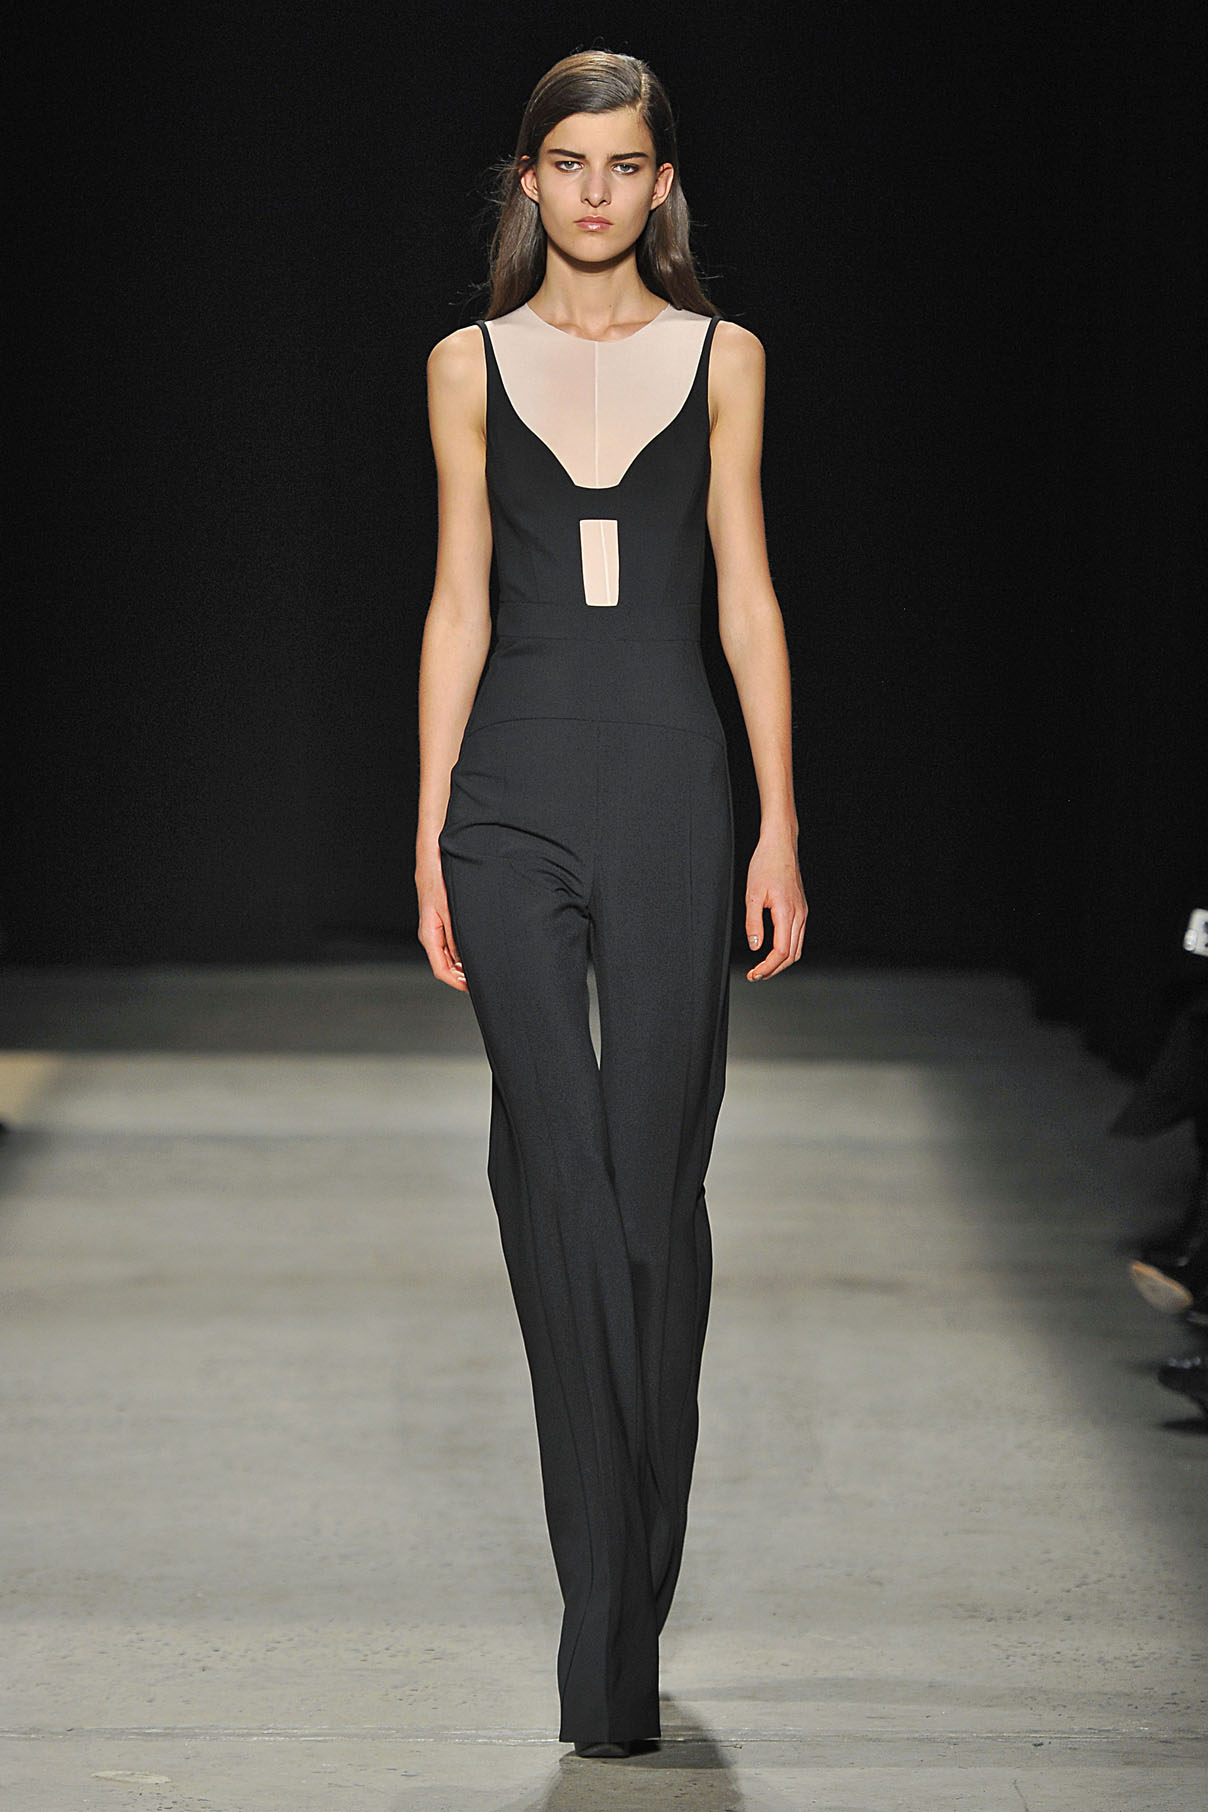 Look 7 Black scuba crepe jumpsuit with nude sheer jersey top.